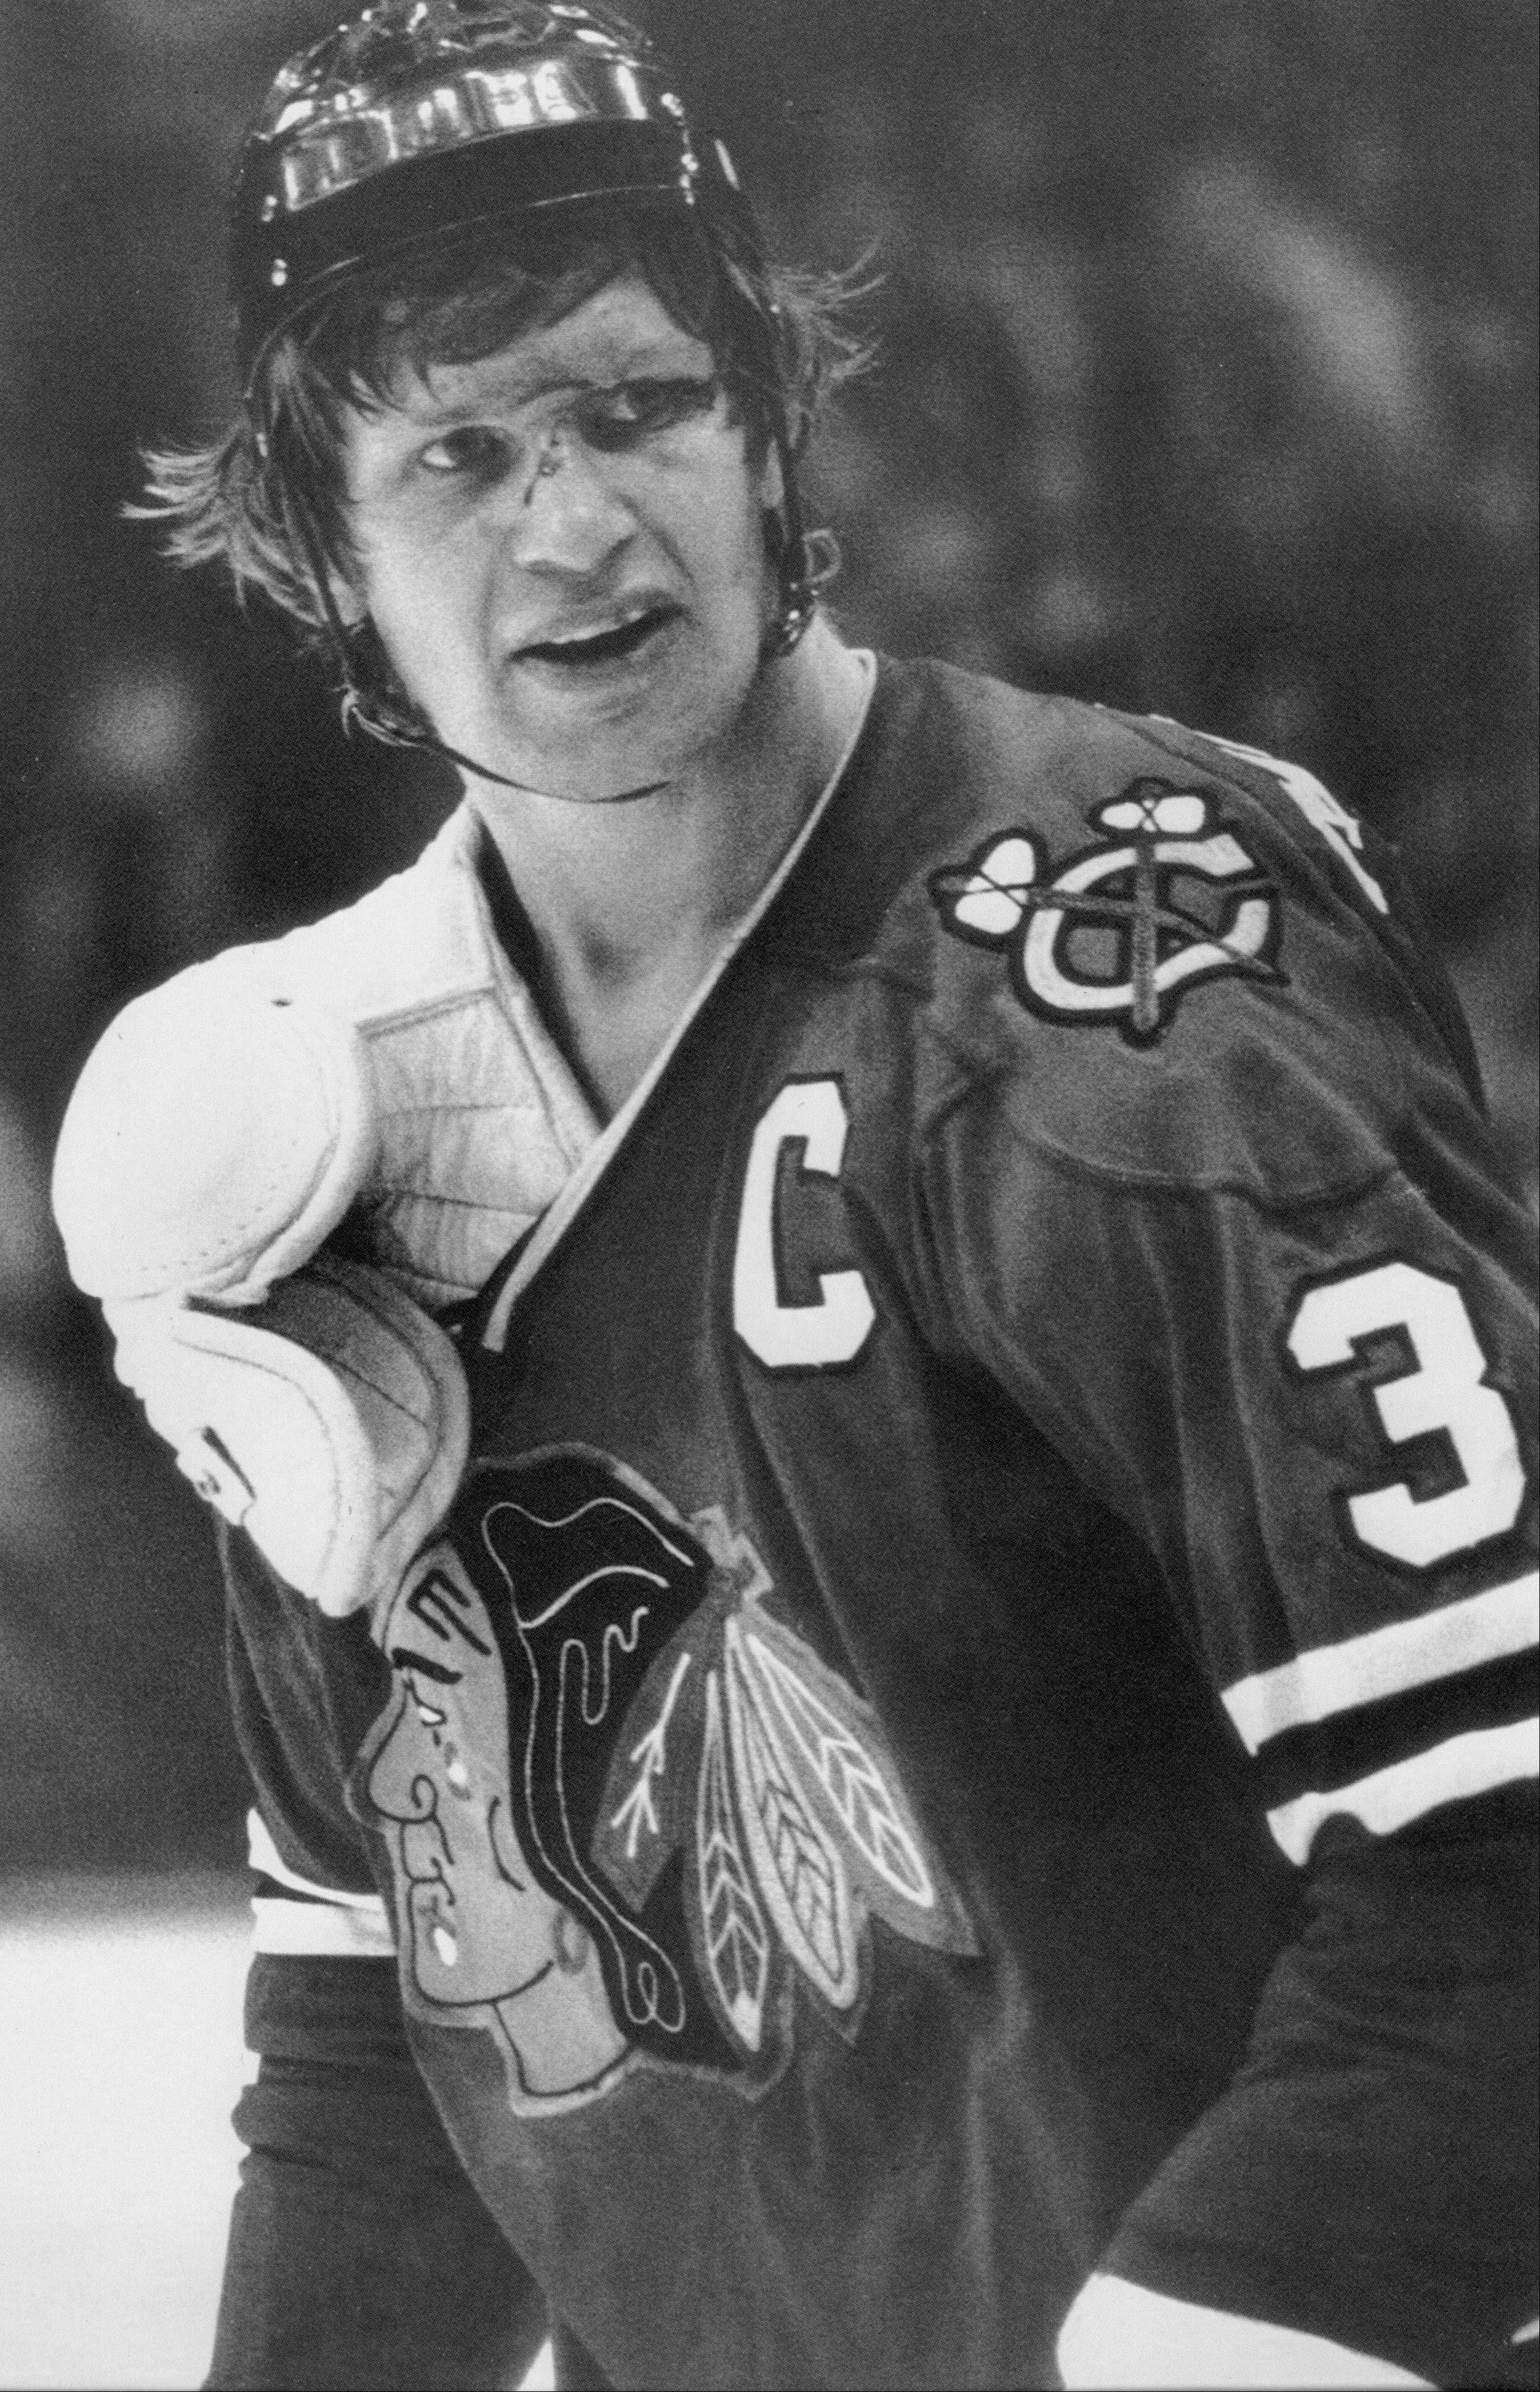 Keith Magnuson did his best to protect other Blackhawks players.